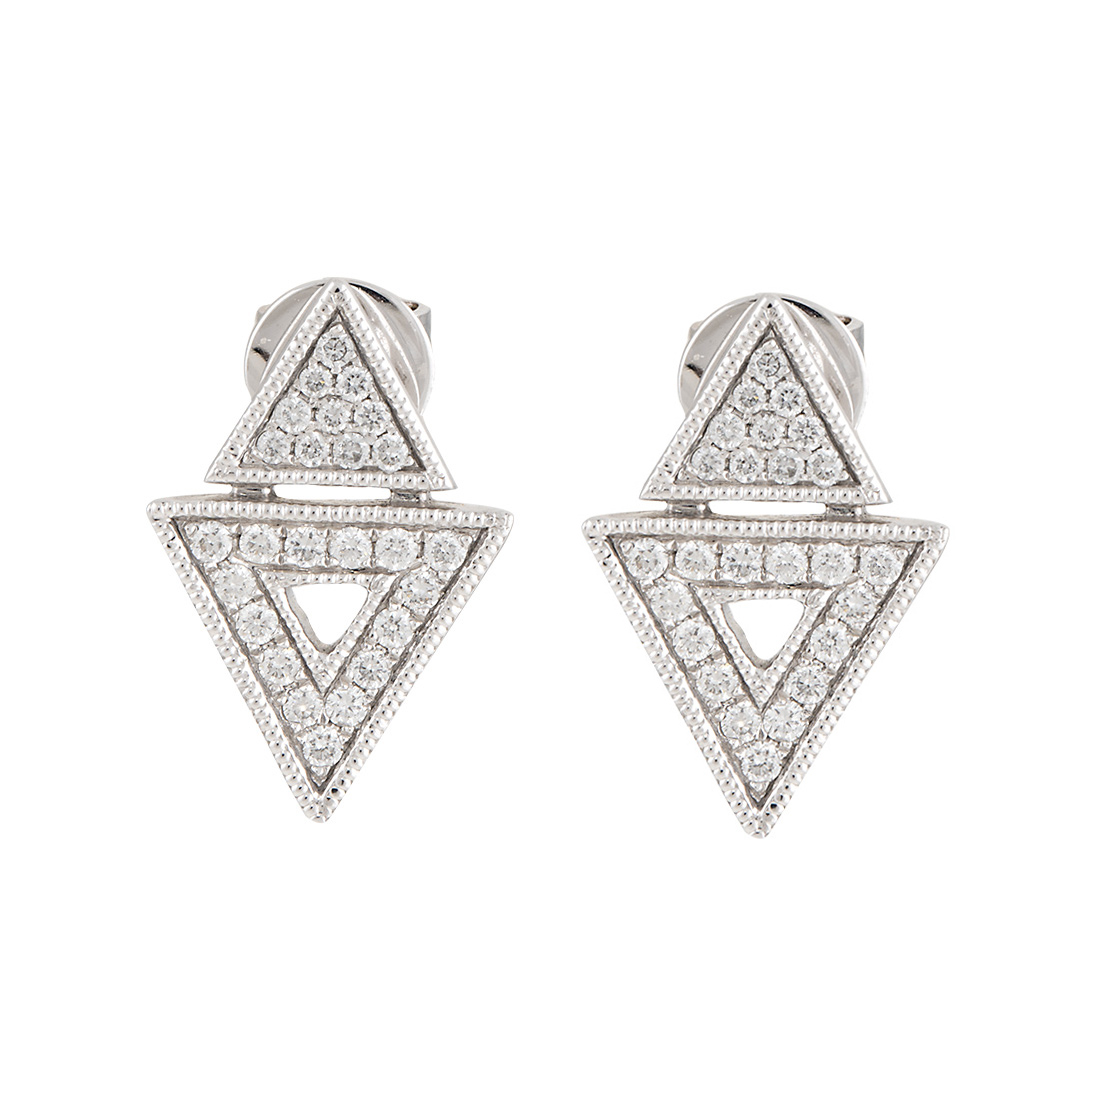 "Image of ""Dana Rebecca 14K White Gold Jemma Morgan 0.26ct. Diamond Stud Earrings"""